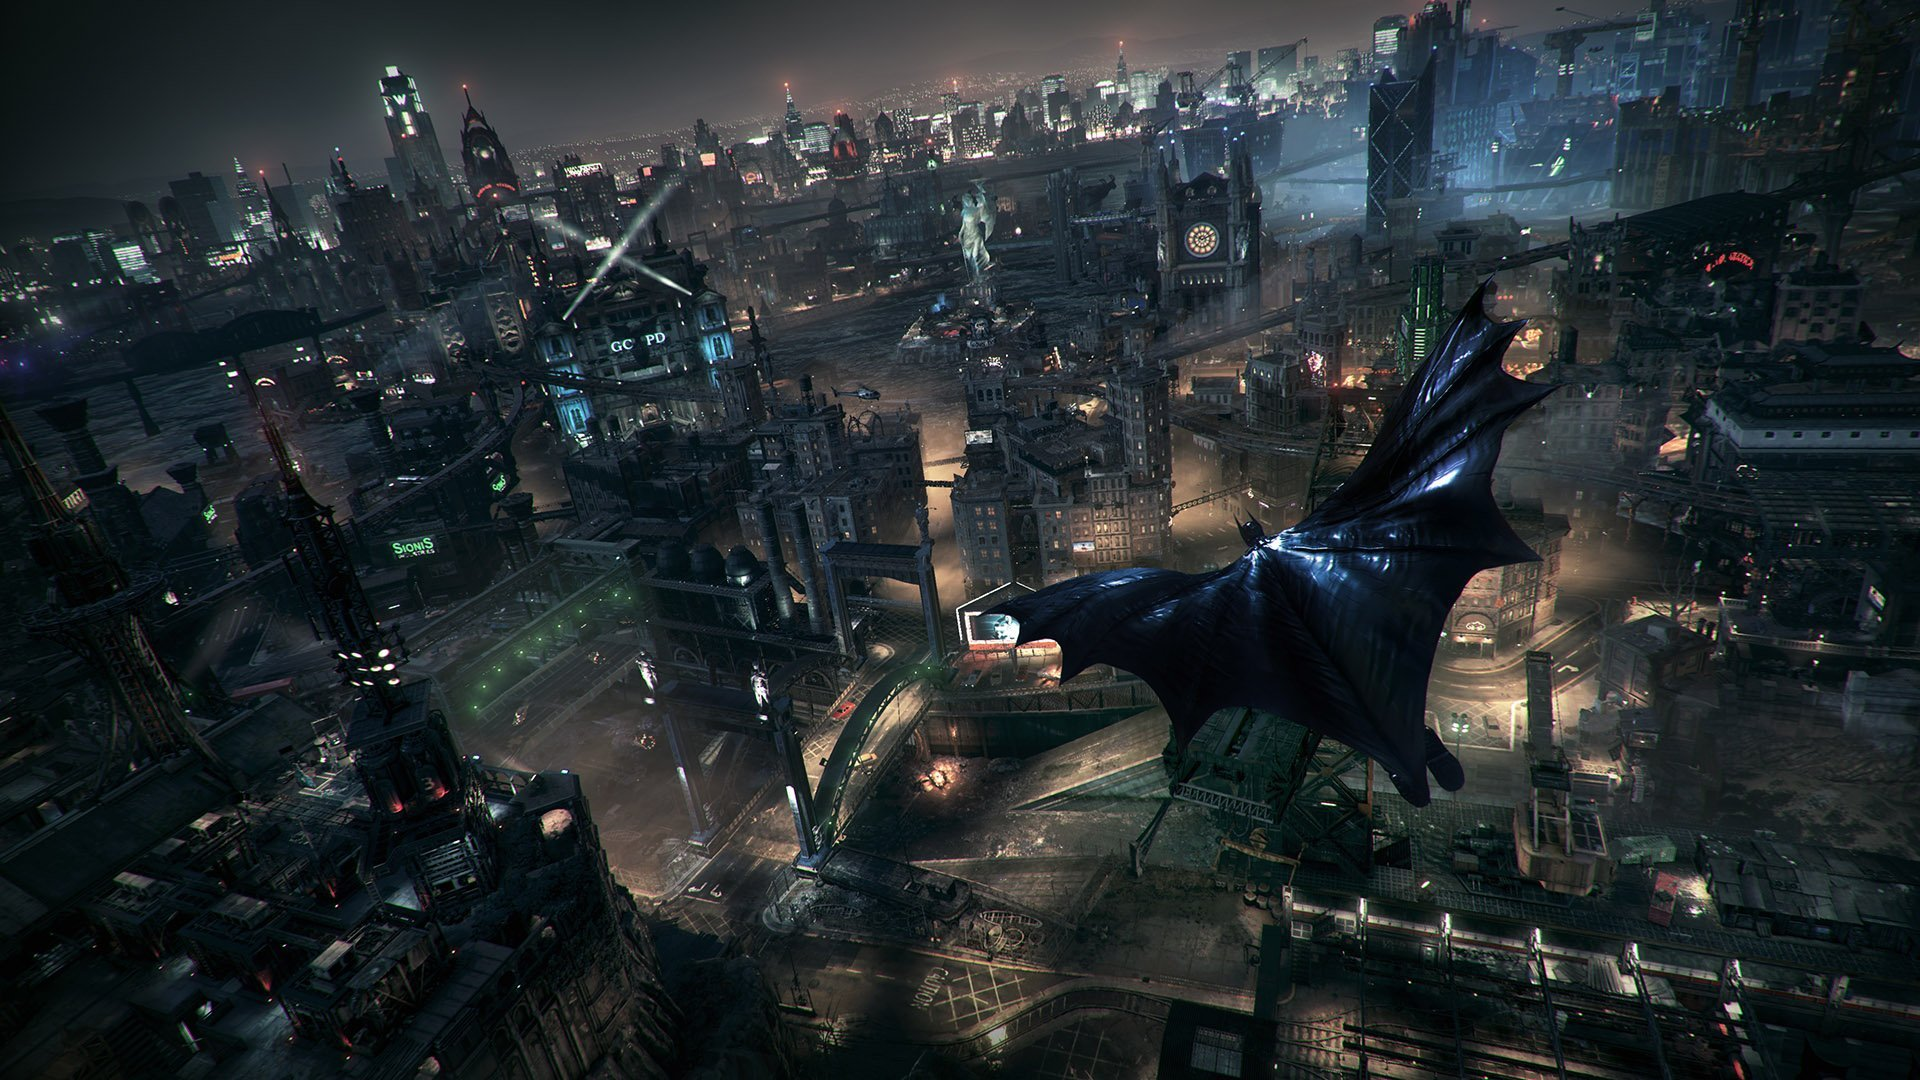 Source httpattackofthefanboycomnewsbatman arkham knight pc 1920x1080